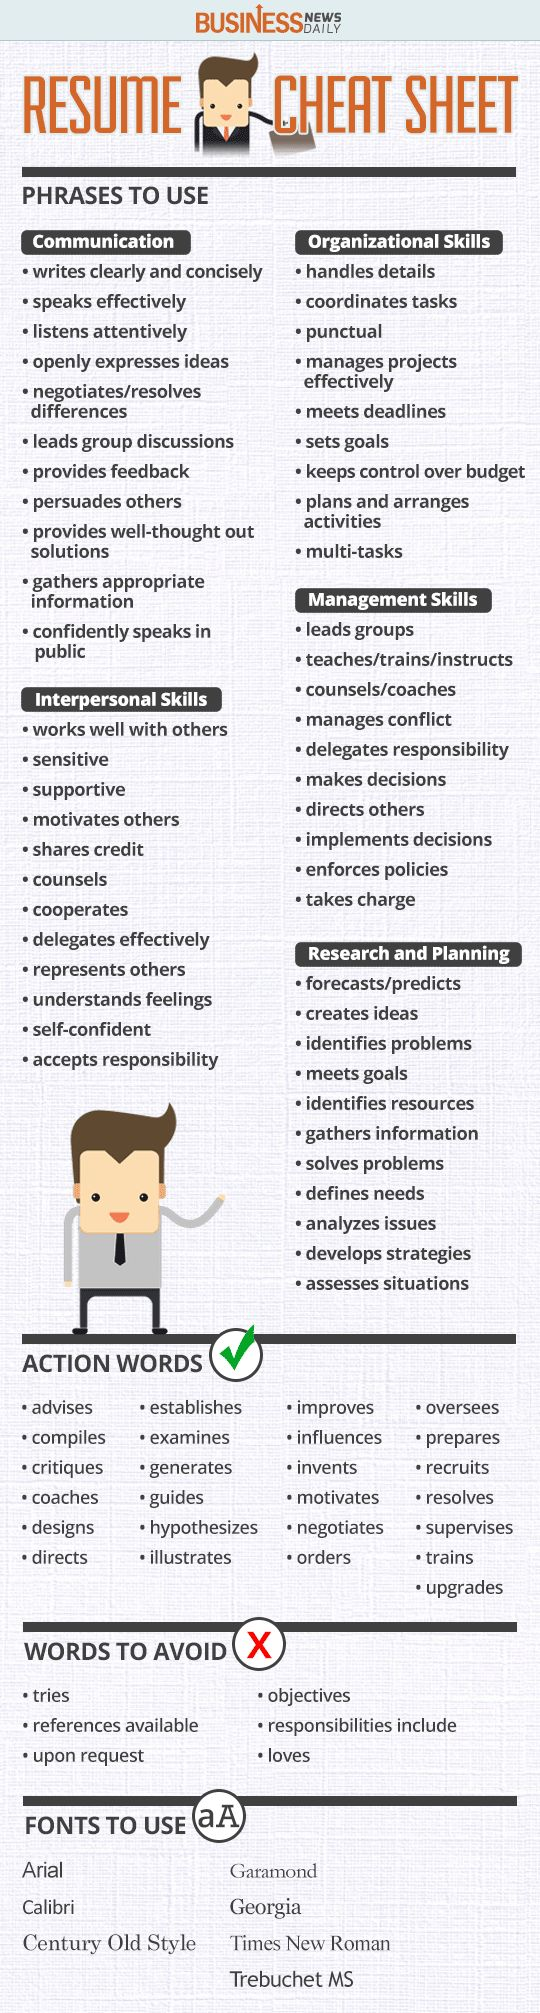 Opposenewapstandardsus  Unique  Ideas About Resume On Pinterest  Cv Format Resume Cv And  With Inspiring Resume Cheat Sheet Infographic Andrews Almost Done With A Complete Unit On Employment Which With Adorable Resume Templates For Word  Also Resume Search Free In Addition Communication Skills On Resume And Levels Of Language Proficiency Resume As Well As Fast Food Resume Sample Additionally Facilities Manager Resume From Pinterestcom With Opposenewapstandardsus  Inspiring  Ideas About Resume On Pinterest  Cv Format Resume Cv And  With Adorable Resume Cheat Sheet Infographic Andrews Almost Done With A Complete Unit On Employment Which And Unique Resume Templates For Word  Also Resume Search Free In Addition Communication Skills On Resume From Pinterestcom